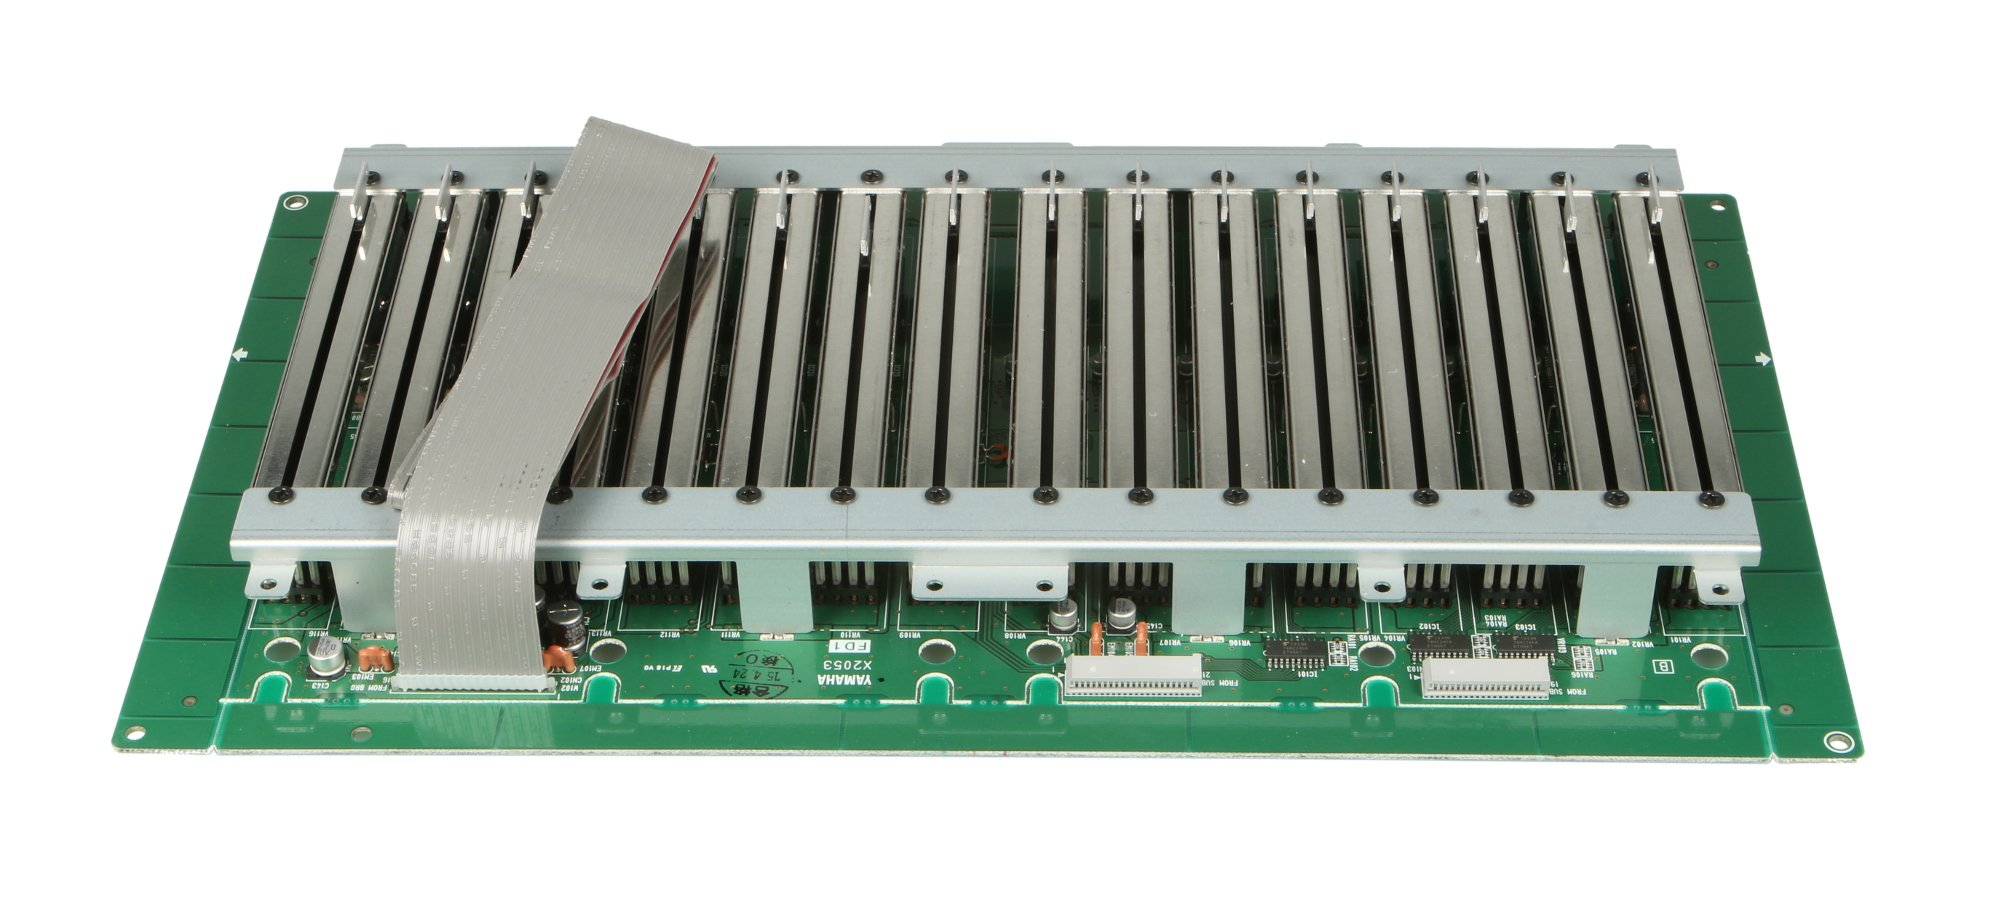 FD1 Fader PCB Assembly for 02R96